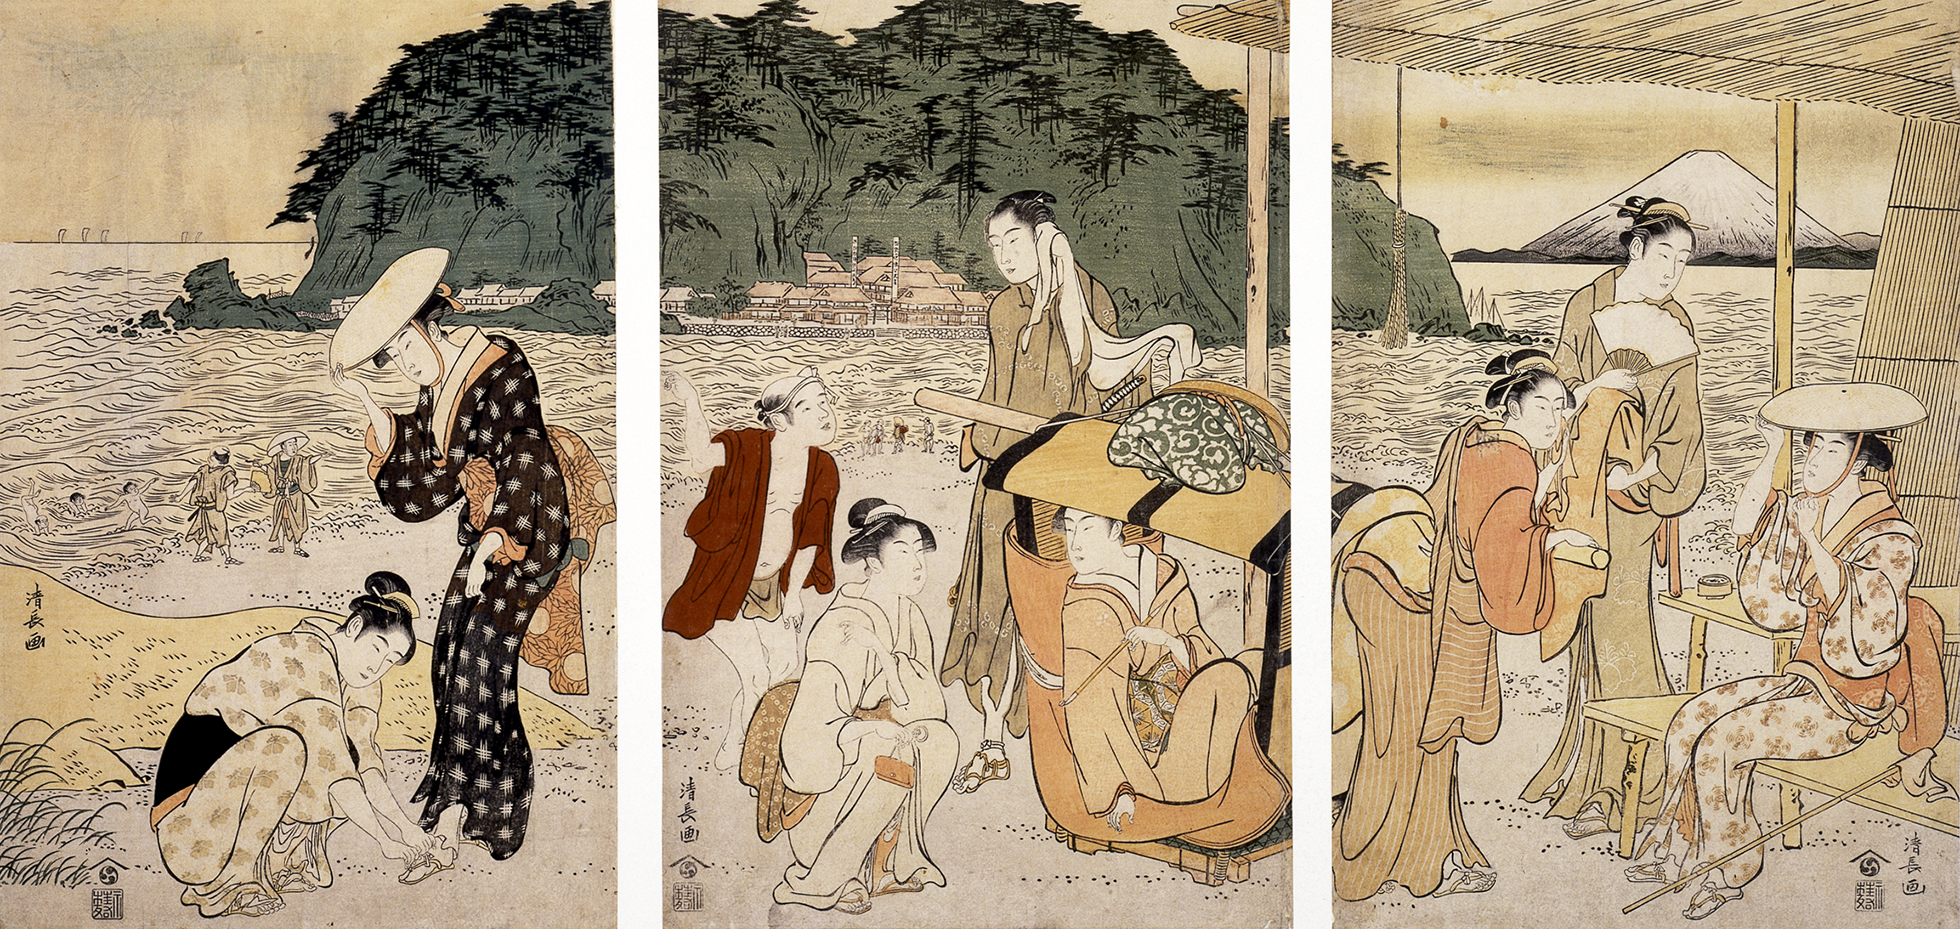 A colour woodblock print (triptych) showing a beach scene where people are relaxing and sitting on the sand. In the background, a green island rises out of the sea and a mountain looms in the distance.